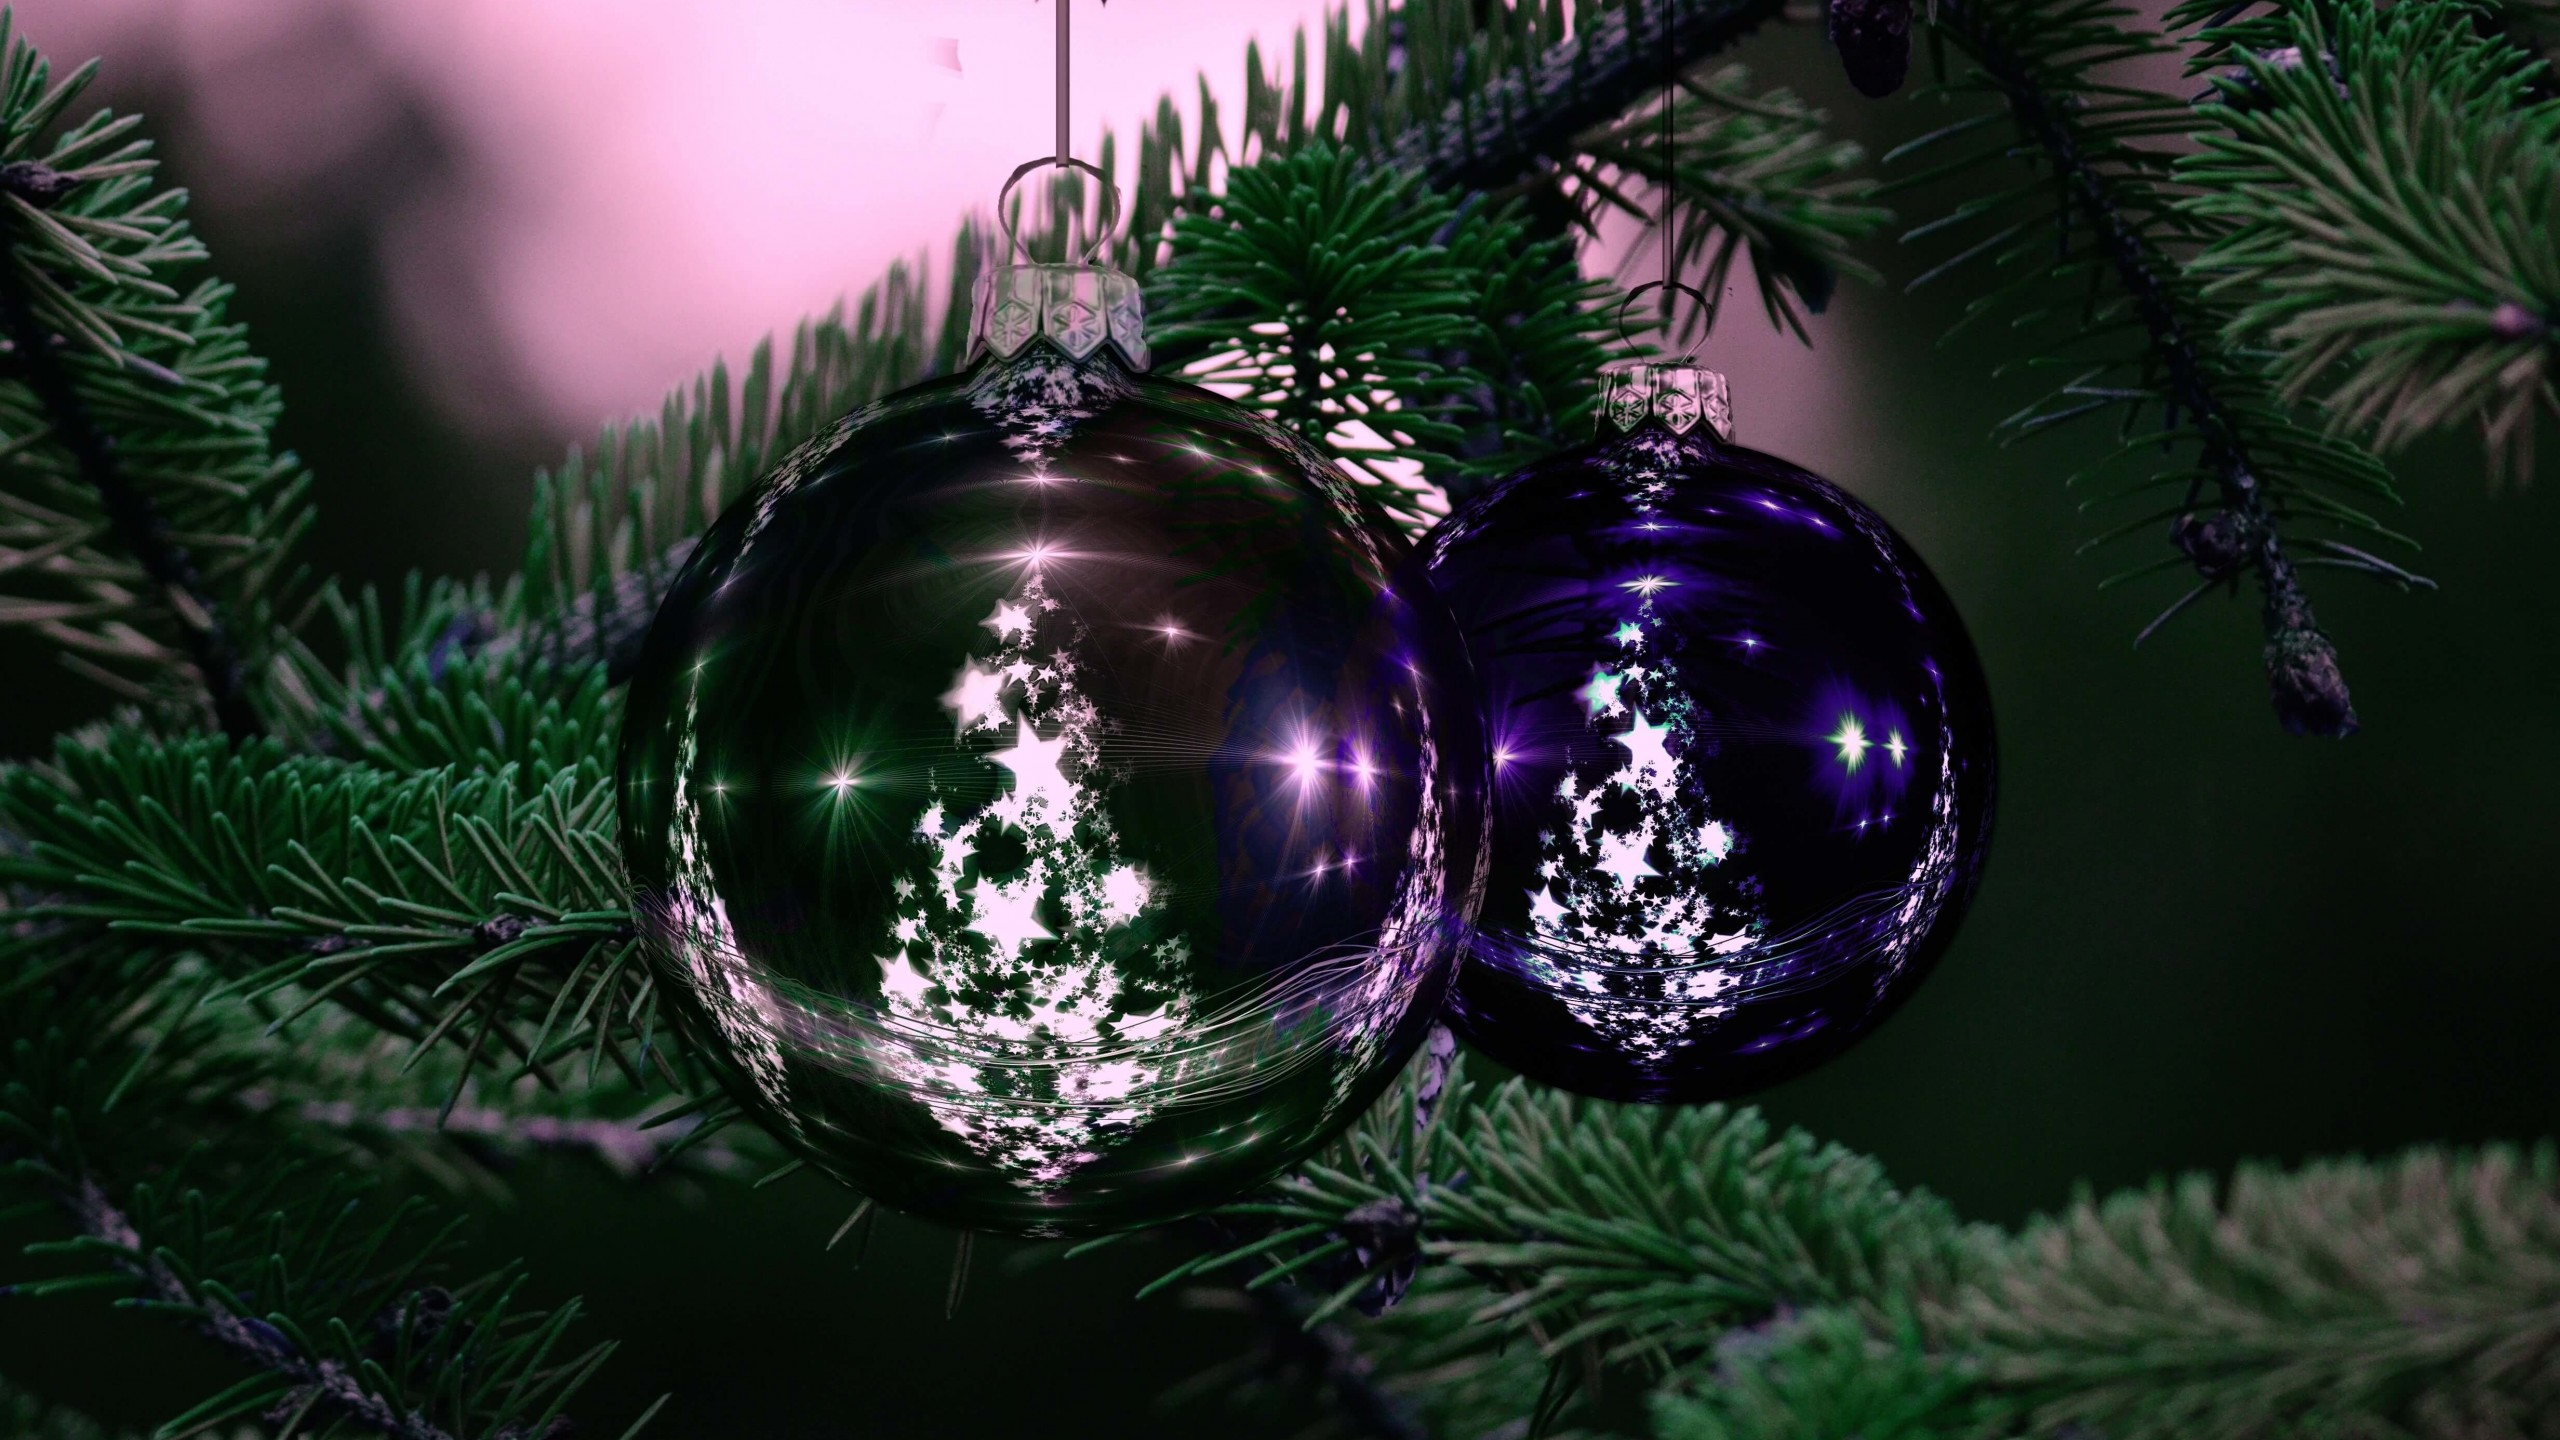 Beautiful Christmas Tree Ornaments Wallpaper for Social Media YouTube Channel Art